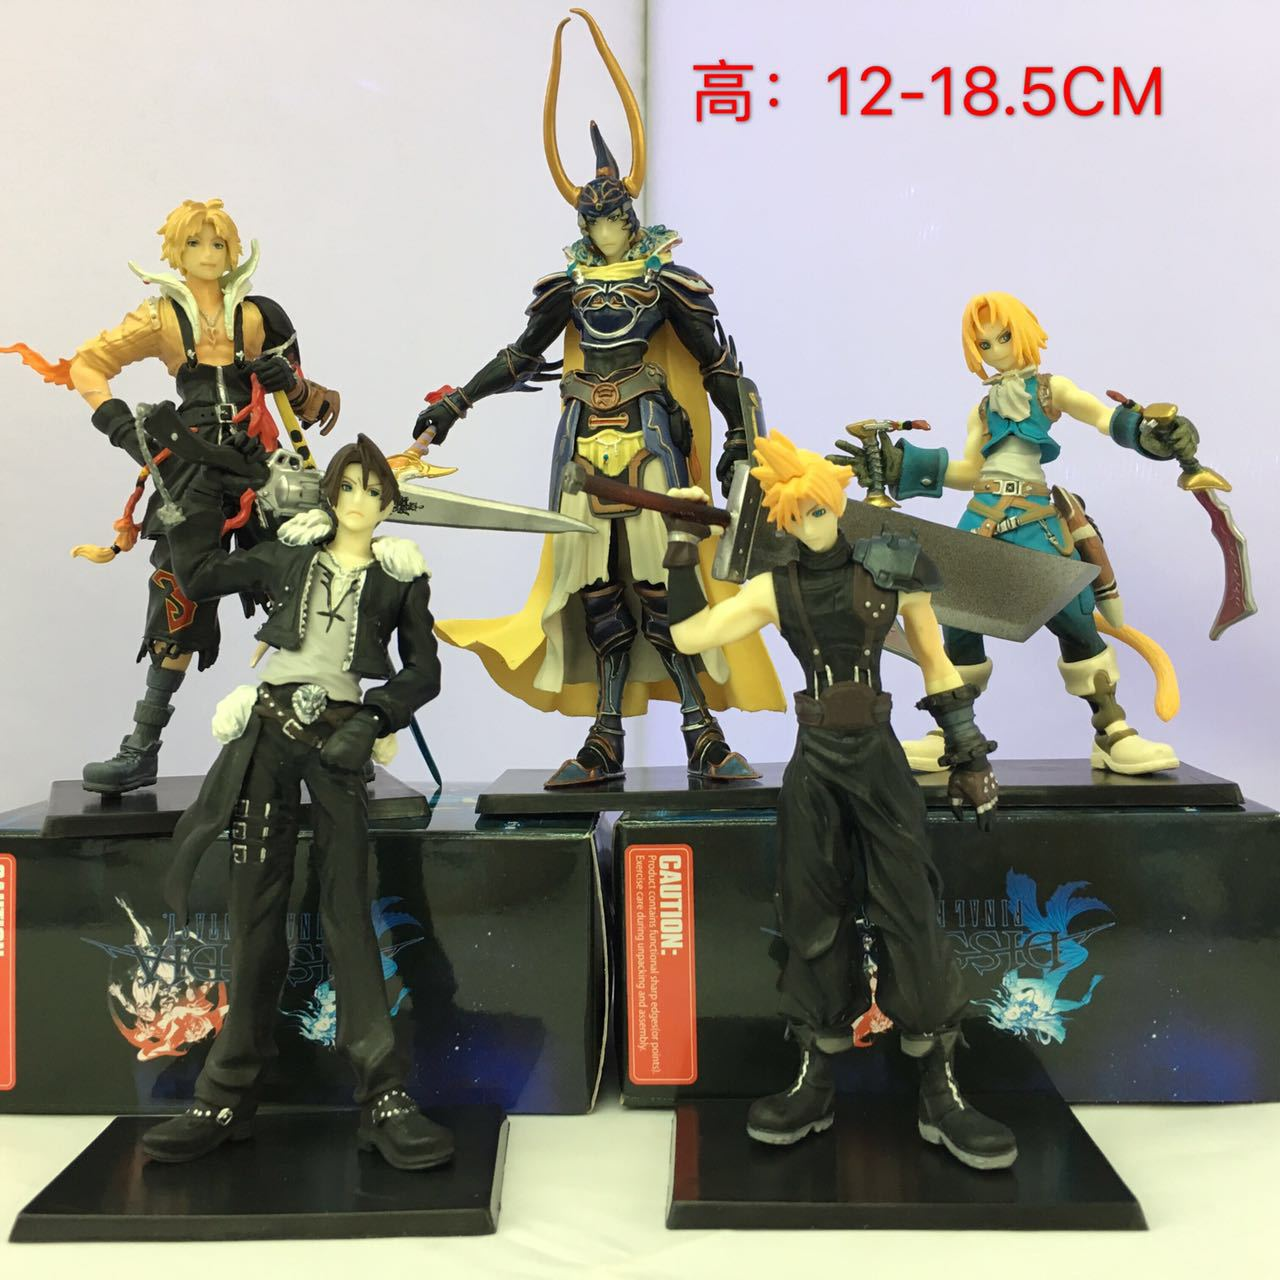 NEW 5pcs/lot 12-18.5CM anime figure Final Fantasy action figure collectible model toys brinquedos(China (Mainland))